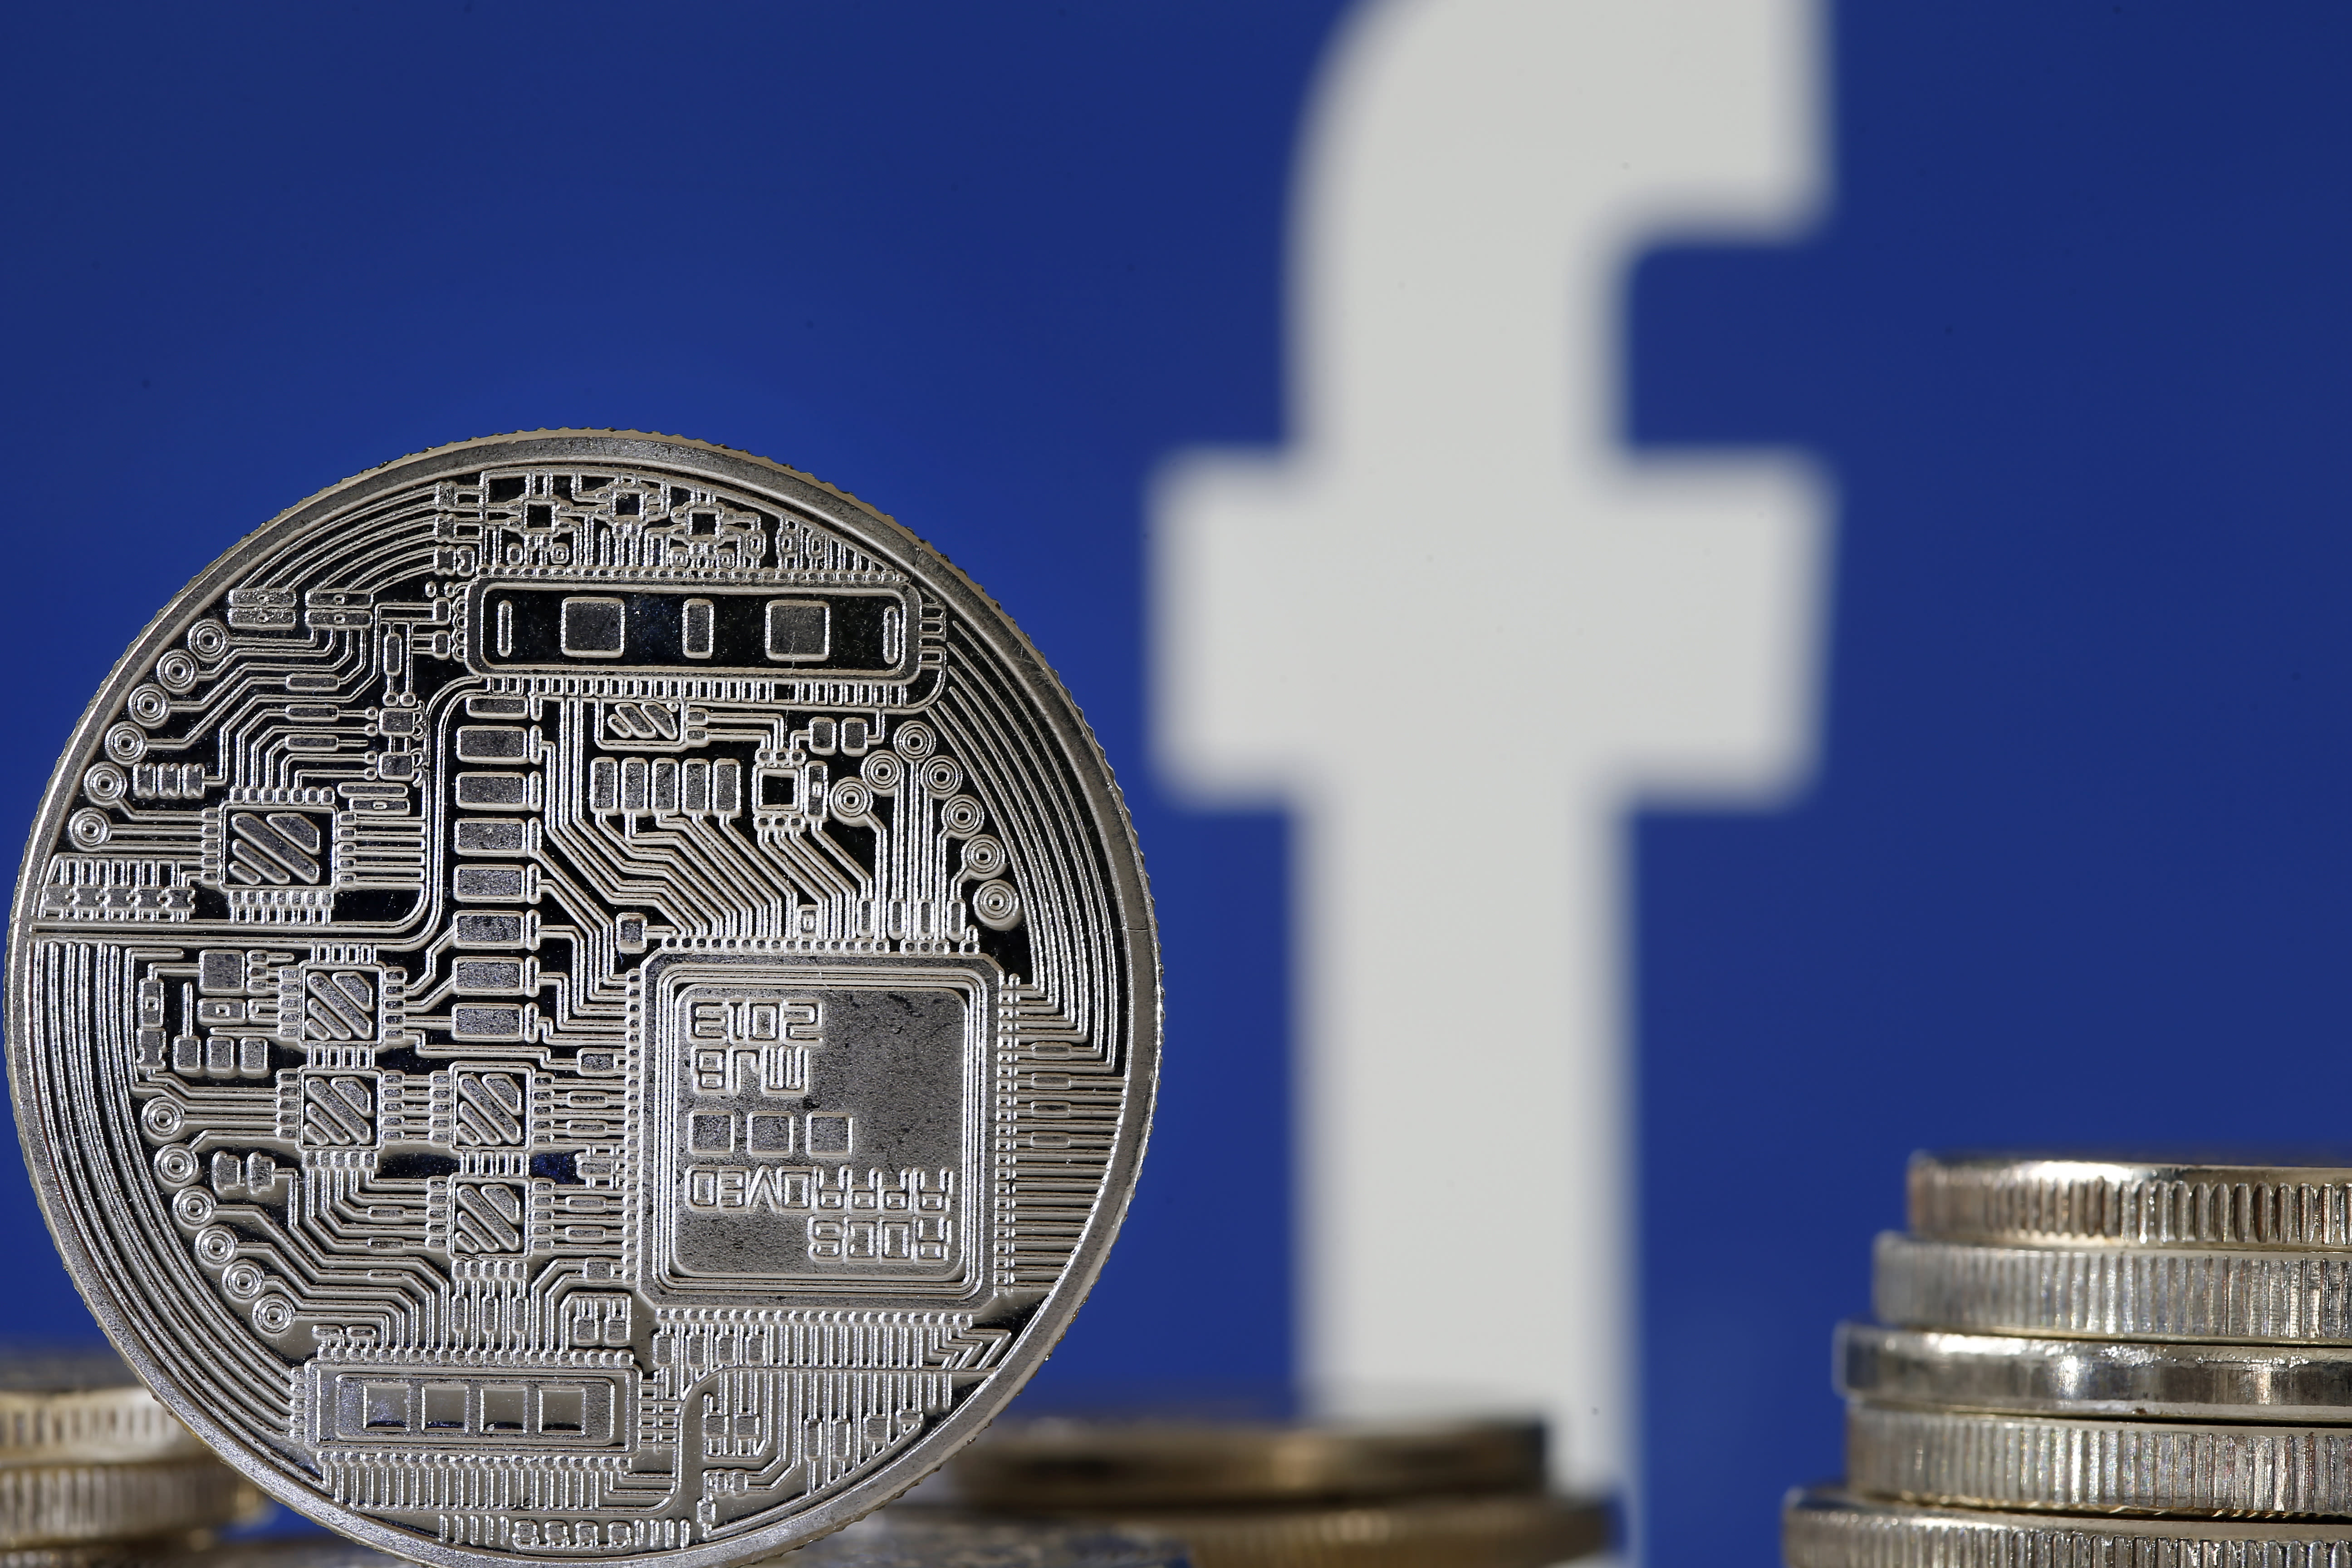 Facebook hasn't told us: why launch a cryptocurrency?